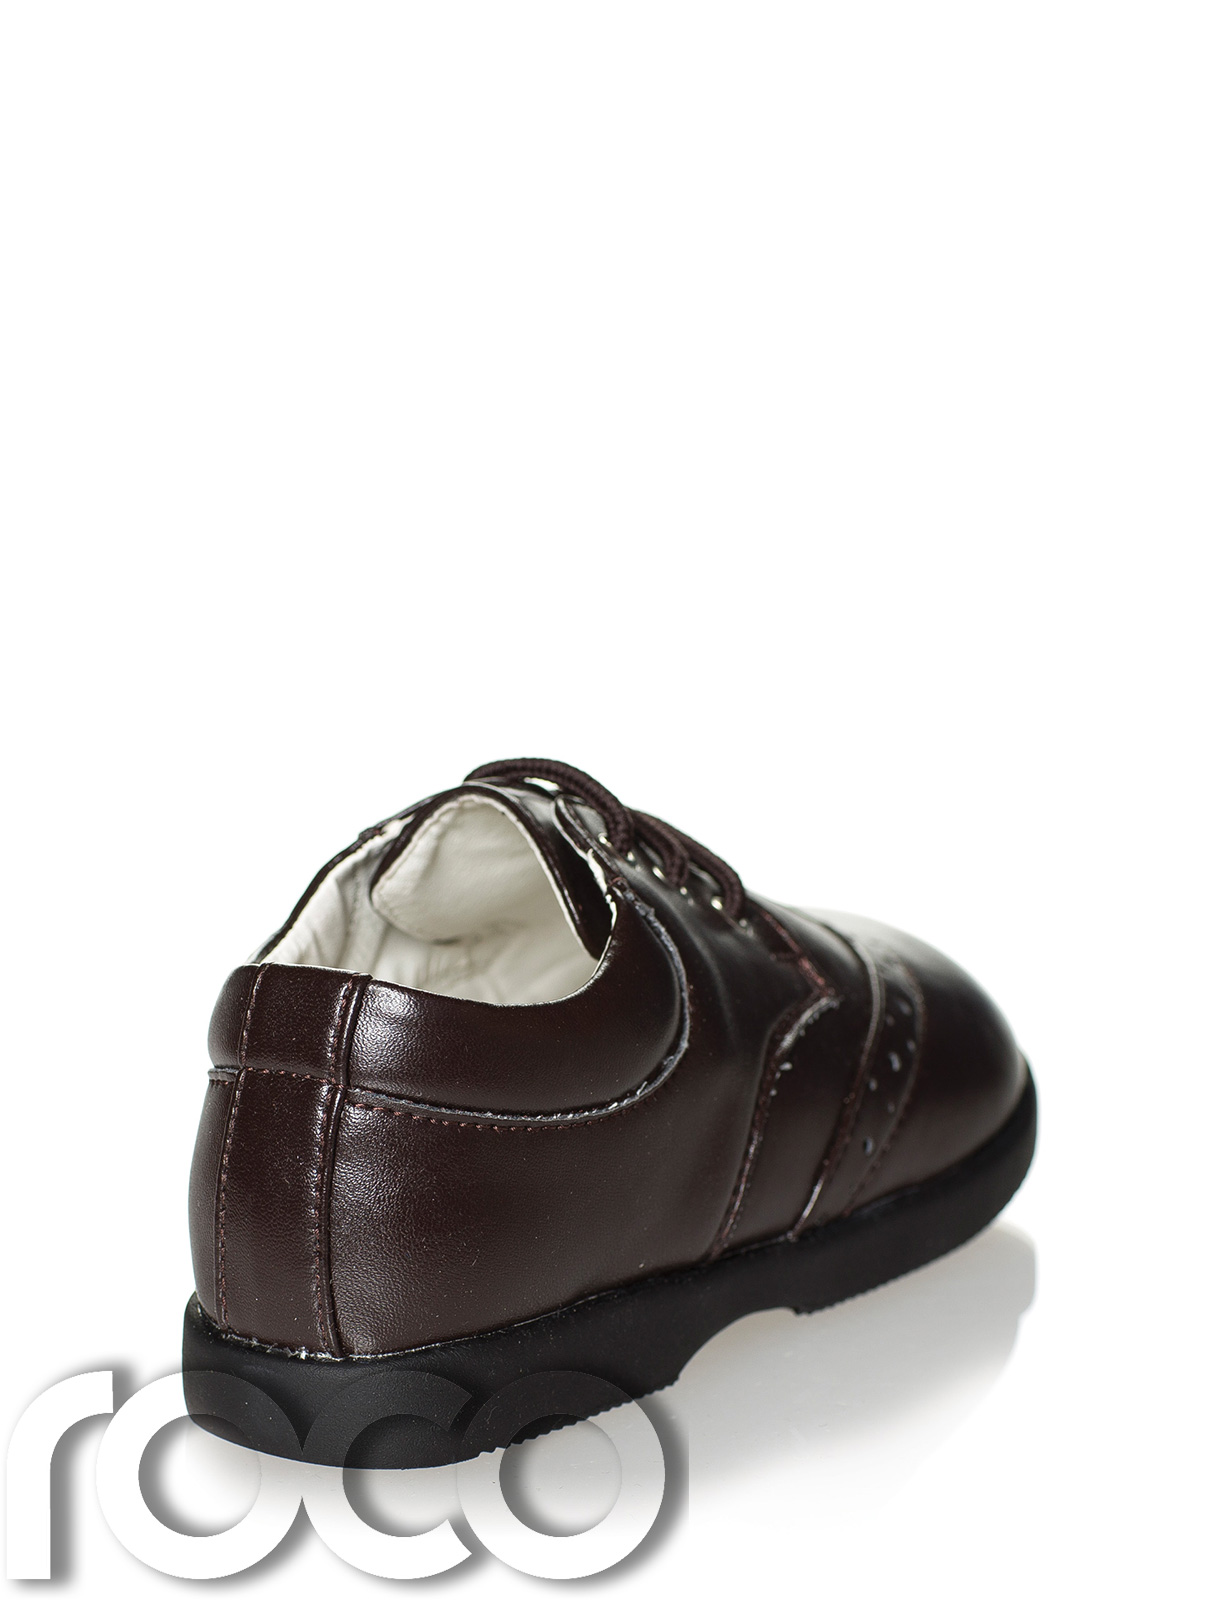 8fec66f38b2c9 Details about Boys Dark Brown Shoes, Boys Formal Shoes, Boys Wedding Shoes, Baby  Shoes